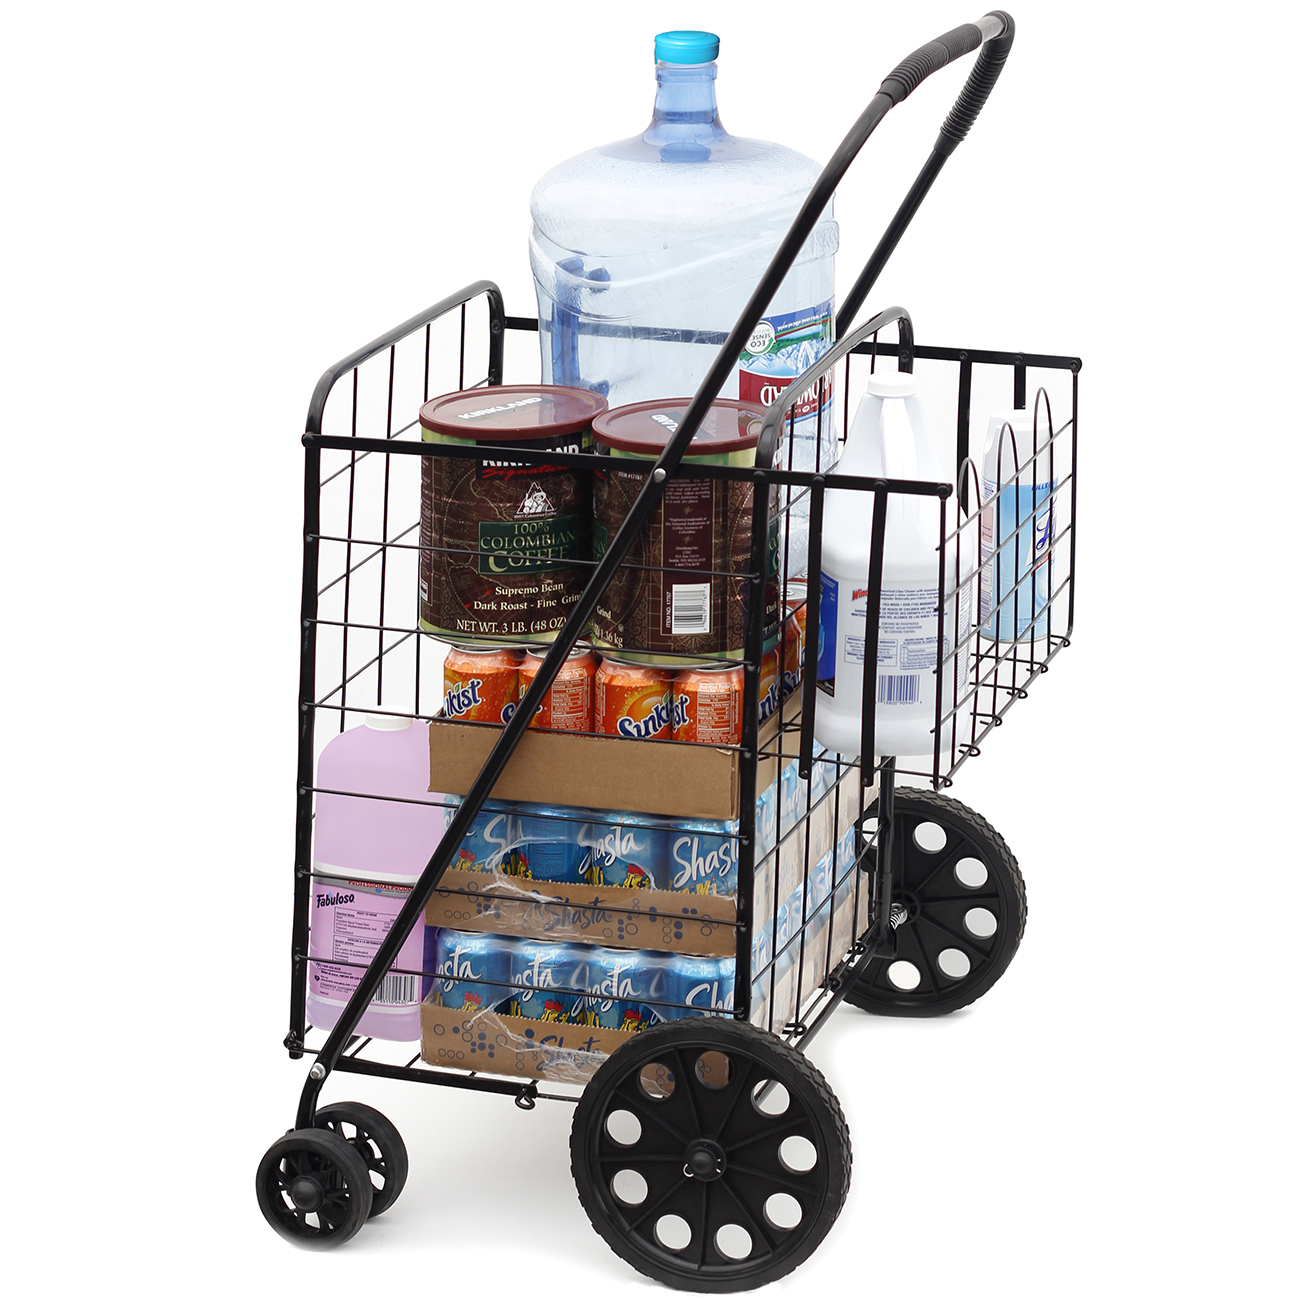 OxGord Folding Shopping Cart with Double Basket- Jumbo Size 150 lb Capacity for Laundry, Grocery, Travel